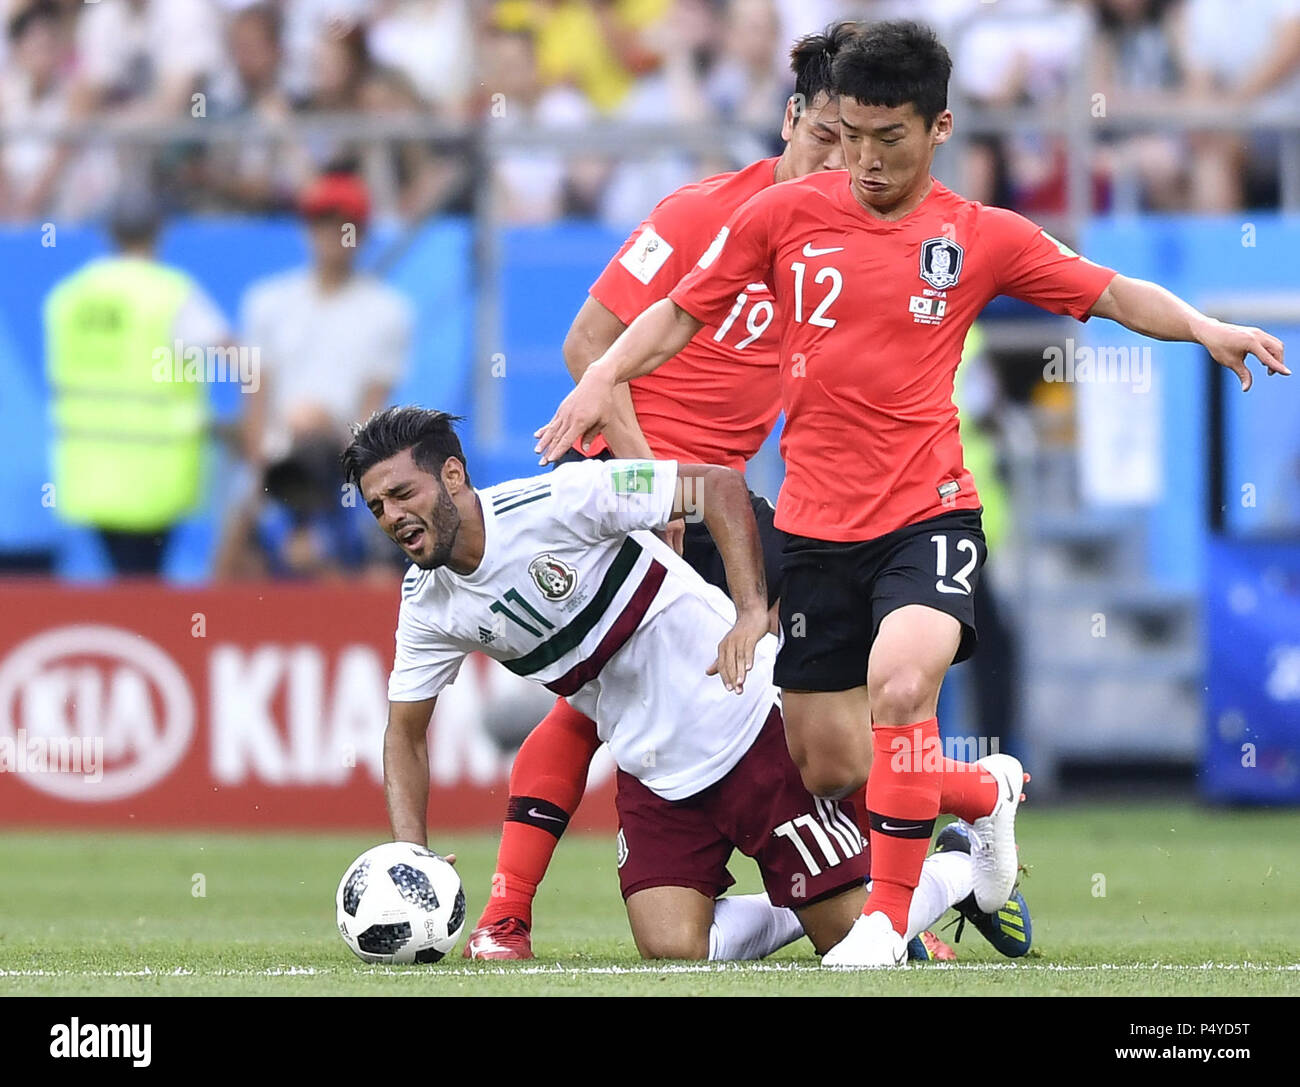 fbf912e079b Kim Minwoo (R) of South Korea vies with Carlos Vela of Mexico during the  2018 FIFA World Cup Group F match between South Korea and Mexico ...